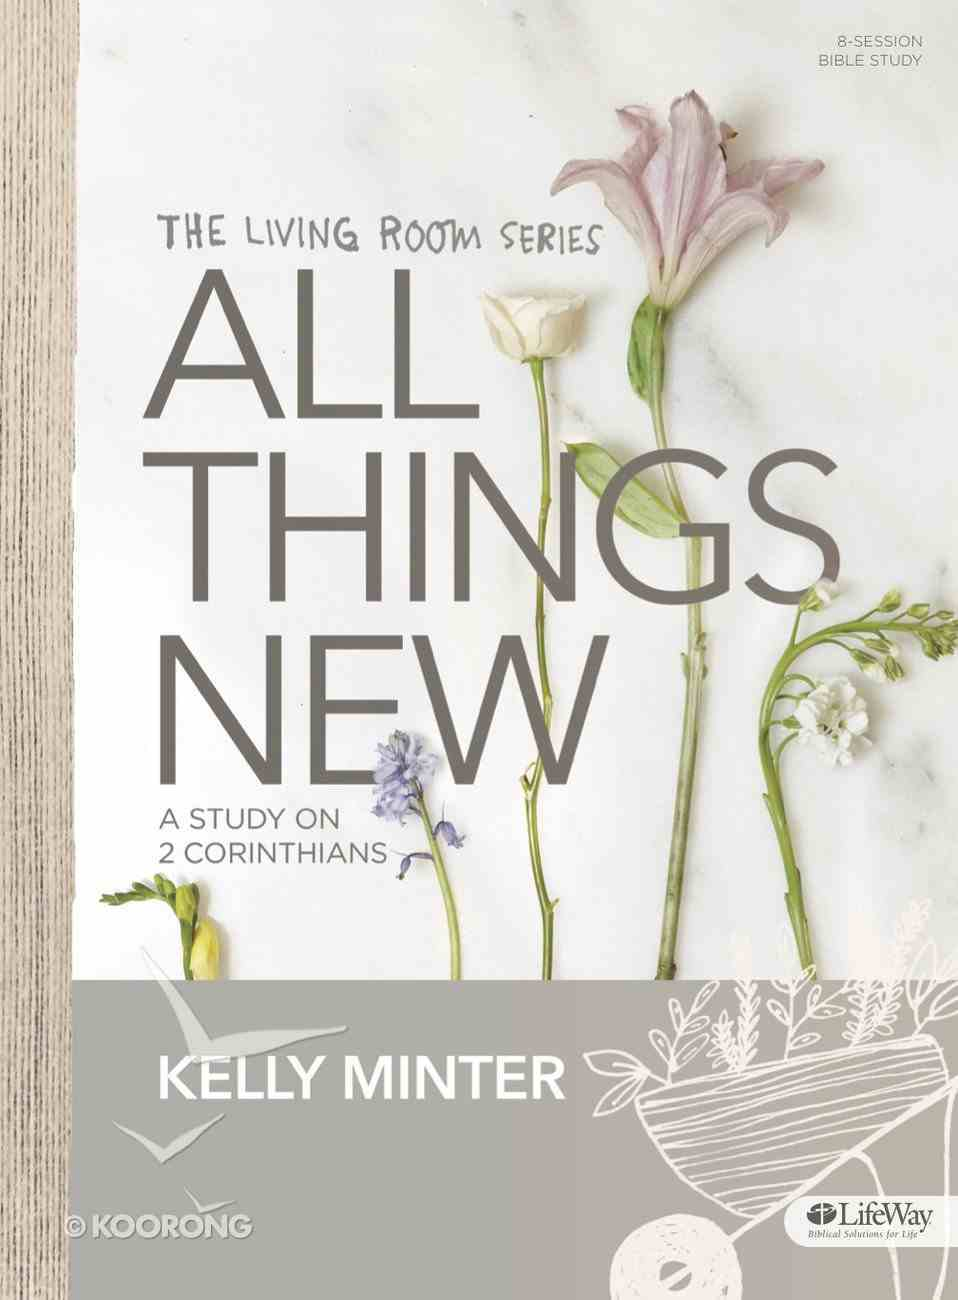 Tlrs: All Things New: A Study on 2 Corinthians - Bible Study Book Paperback